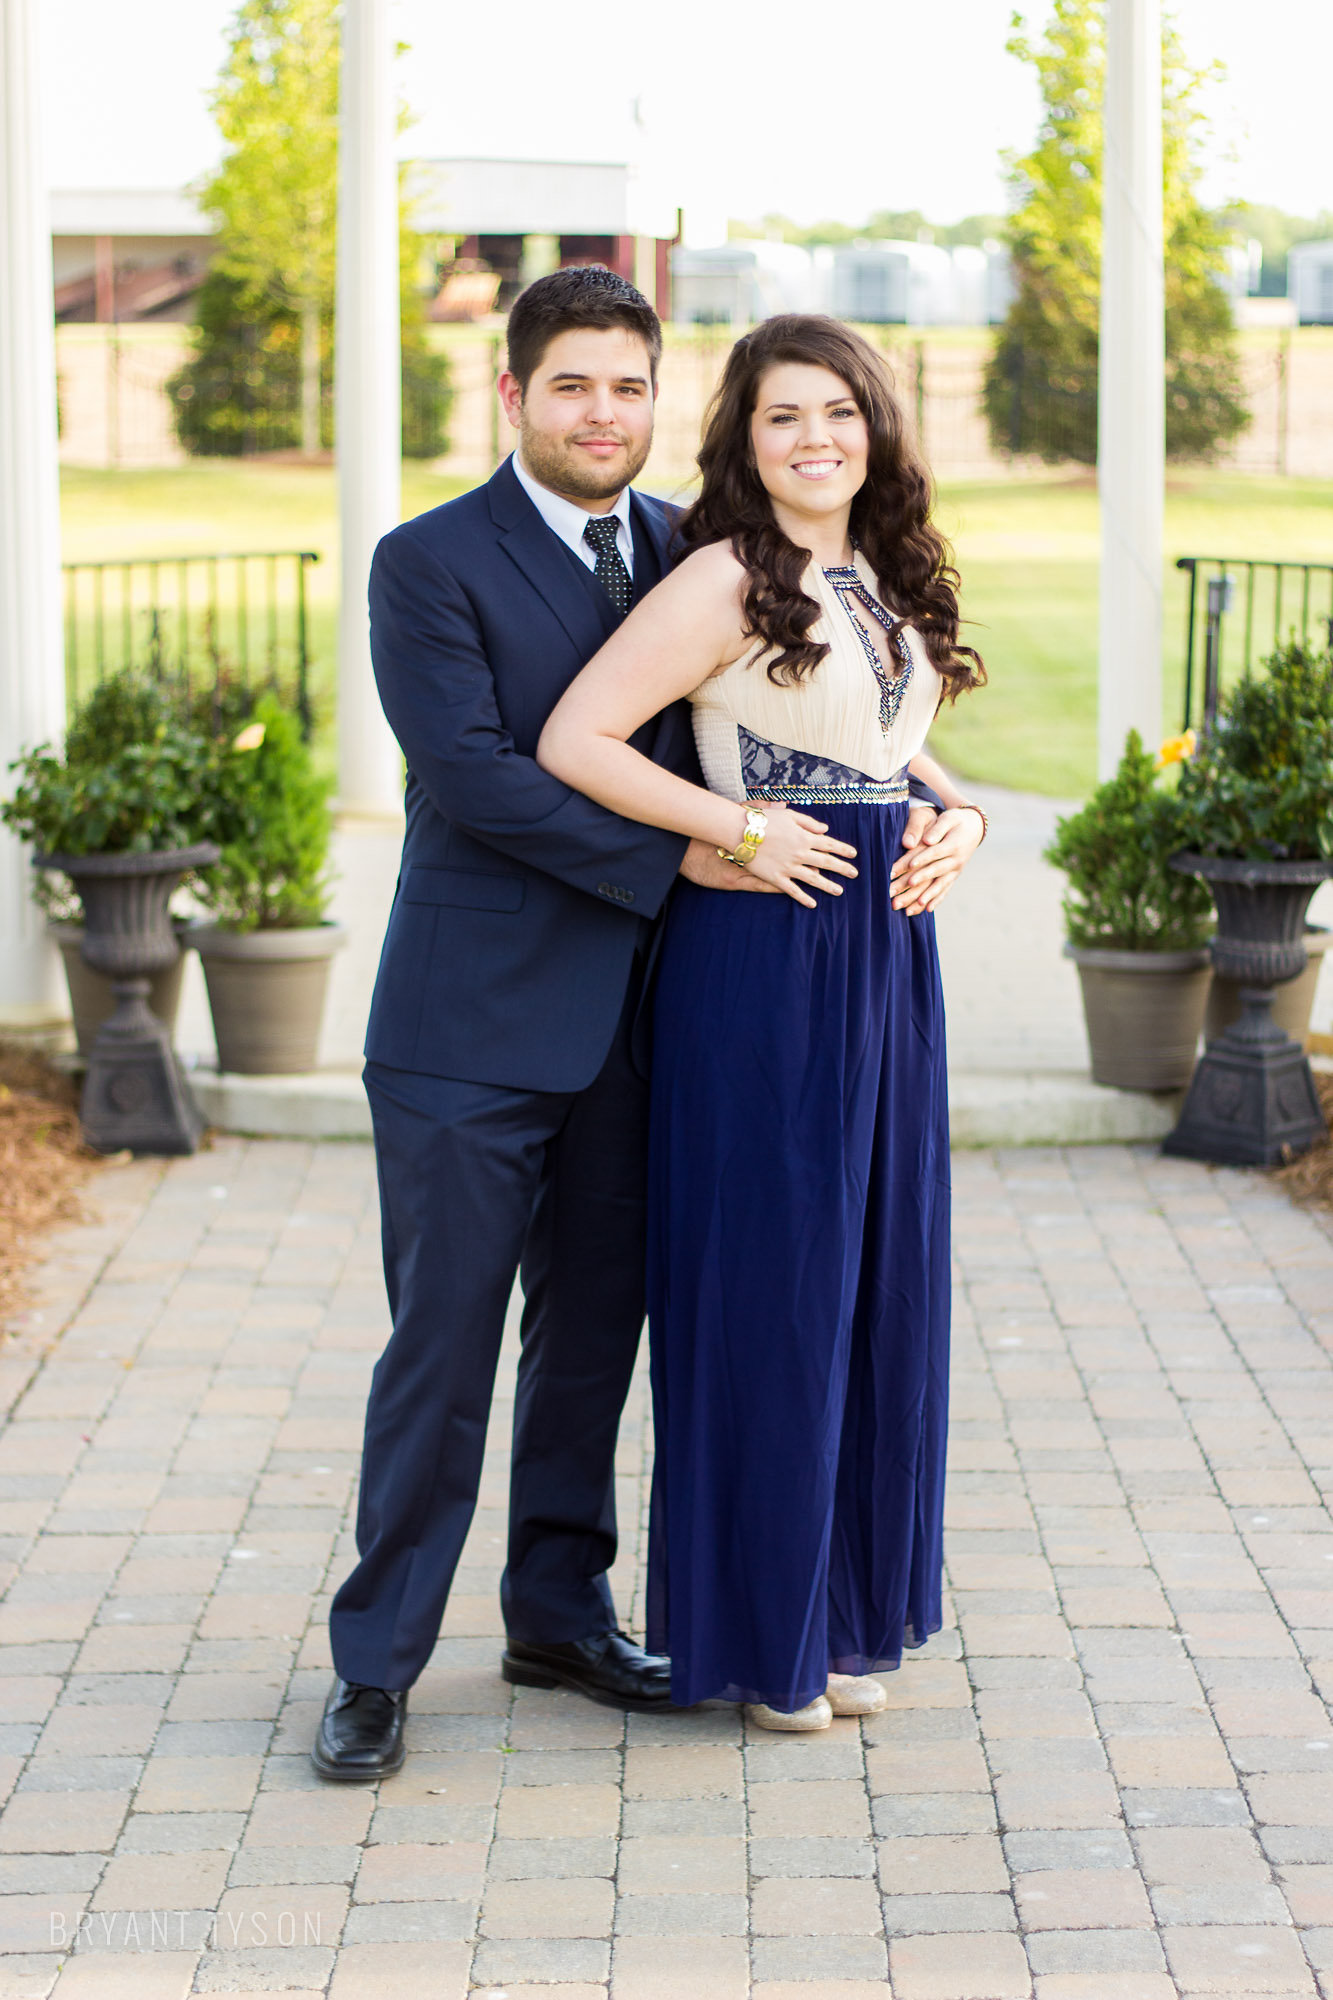 bryant-tyson-photography-greenville-nc-photographer-sigma-alpha-omega-sorority-formal-2015